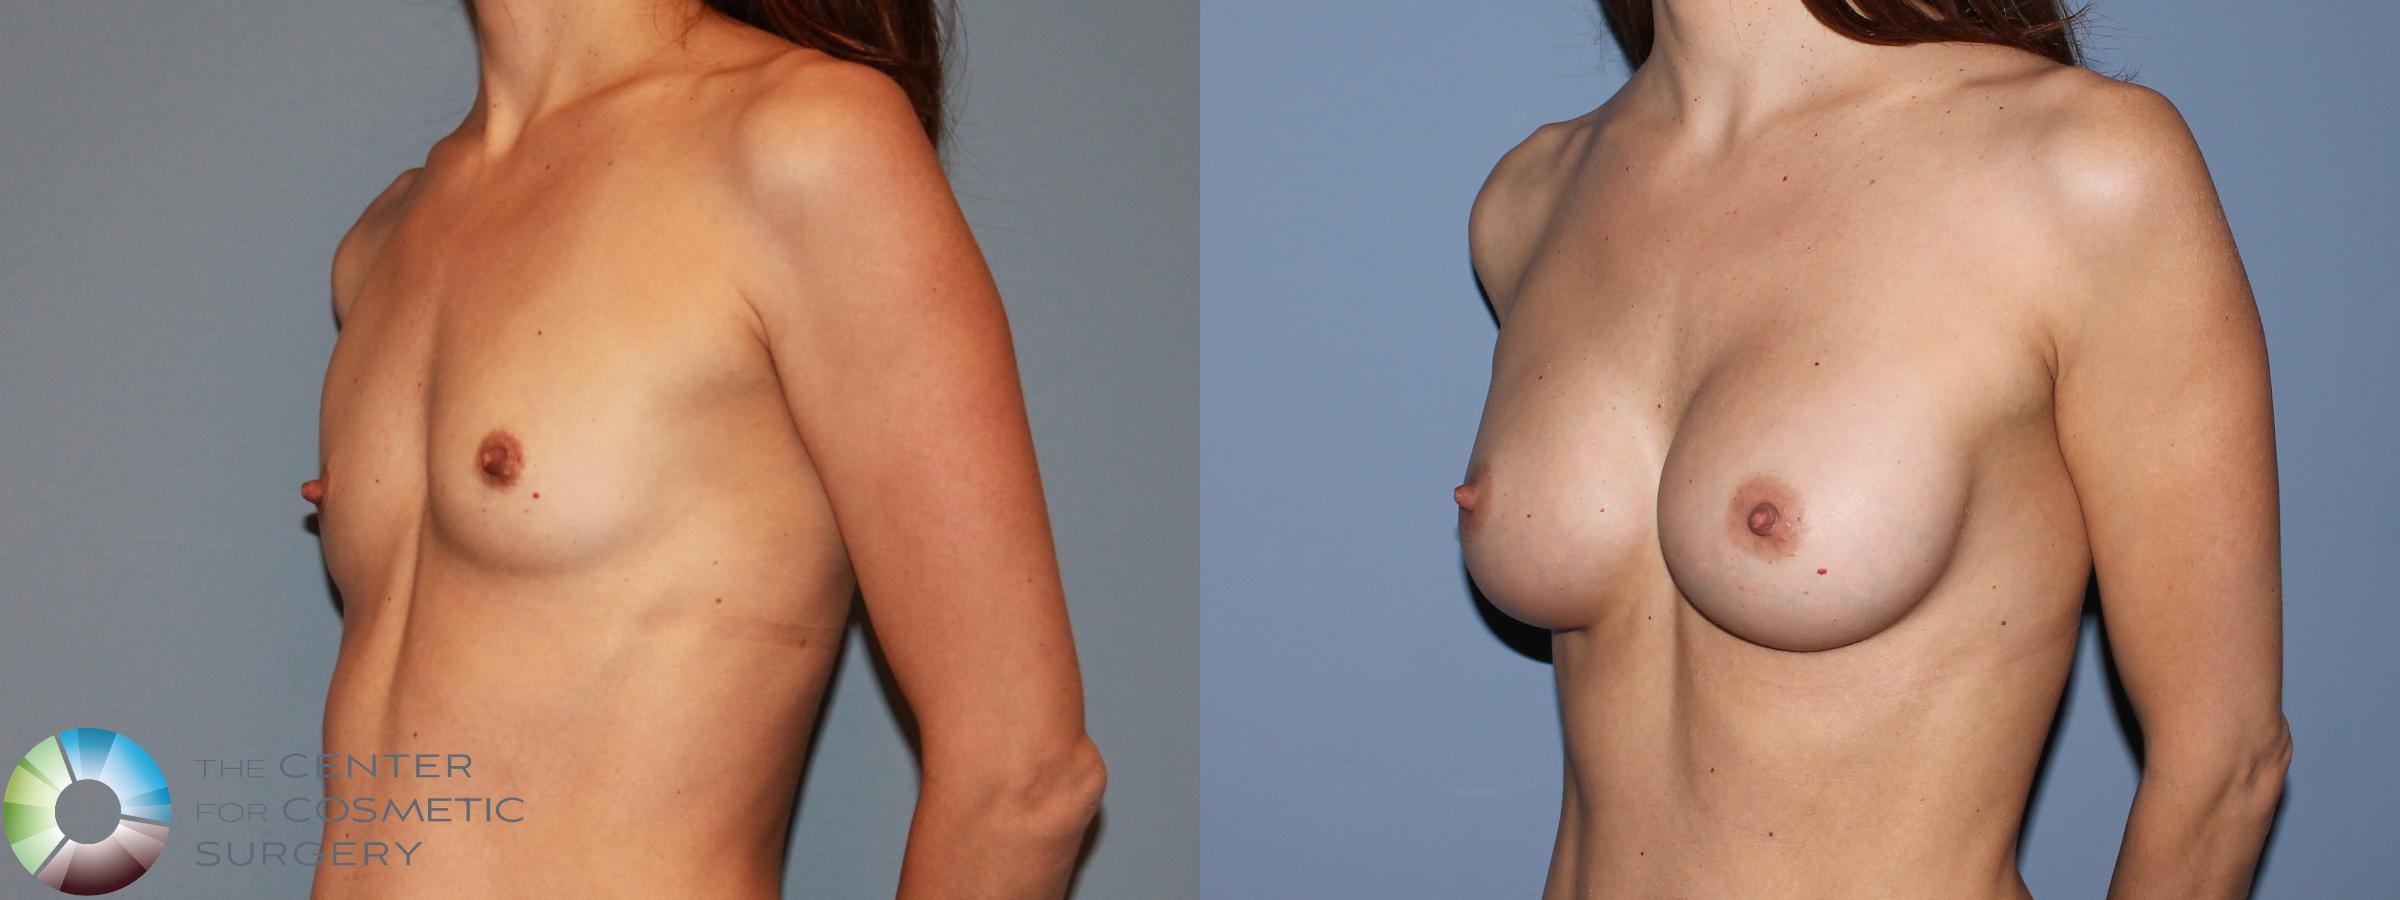 Breast Augmentation Case 481 Before & After View #2 | Golden, CO | The Center for Cosmetic Surgery